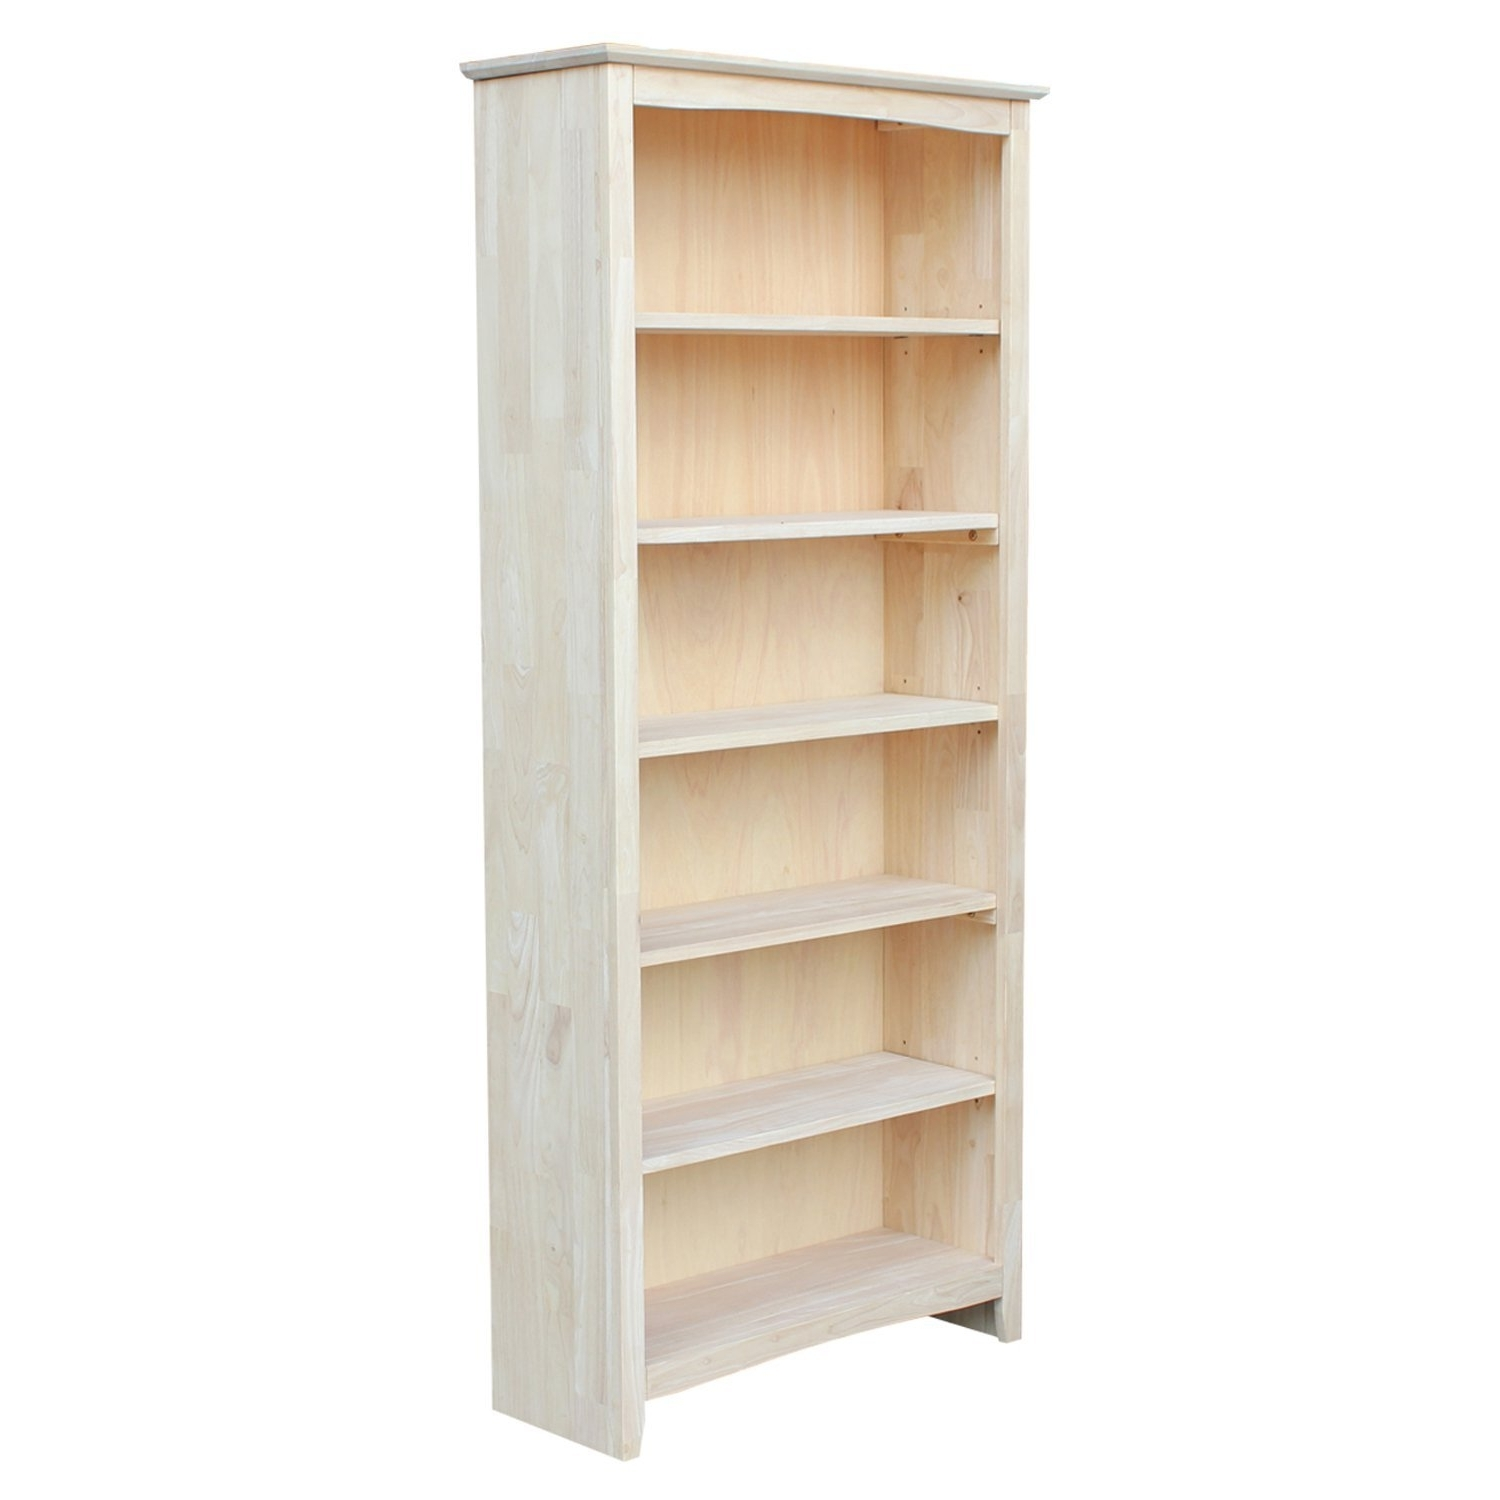 Amazon: International Concepts Shaker Bookcase, 72 Inch Regarding Favorite Unfinished Wood Bookcases (View 5 of 15)